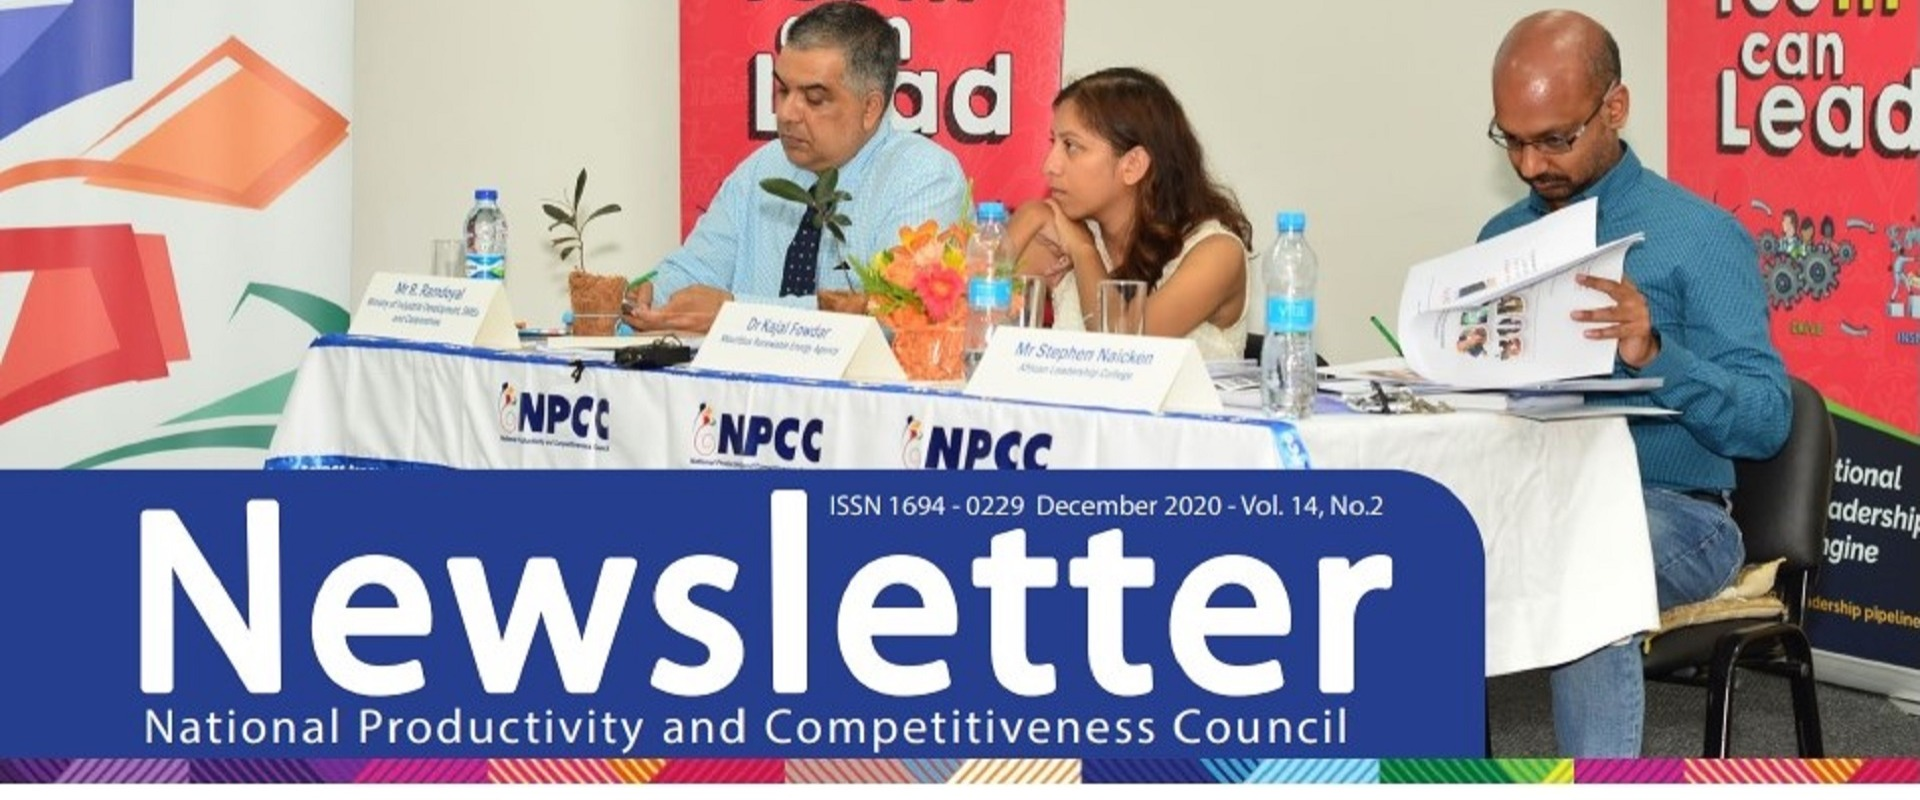 Check out the latest NPCC newsletter